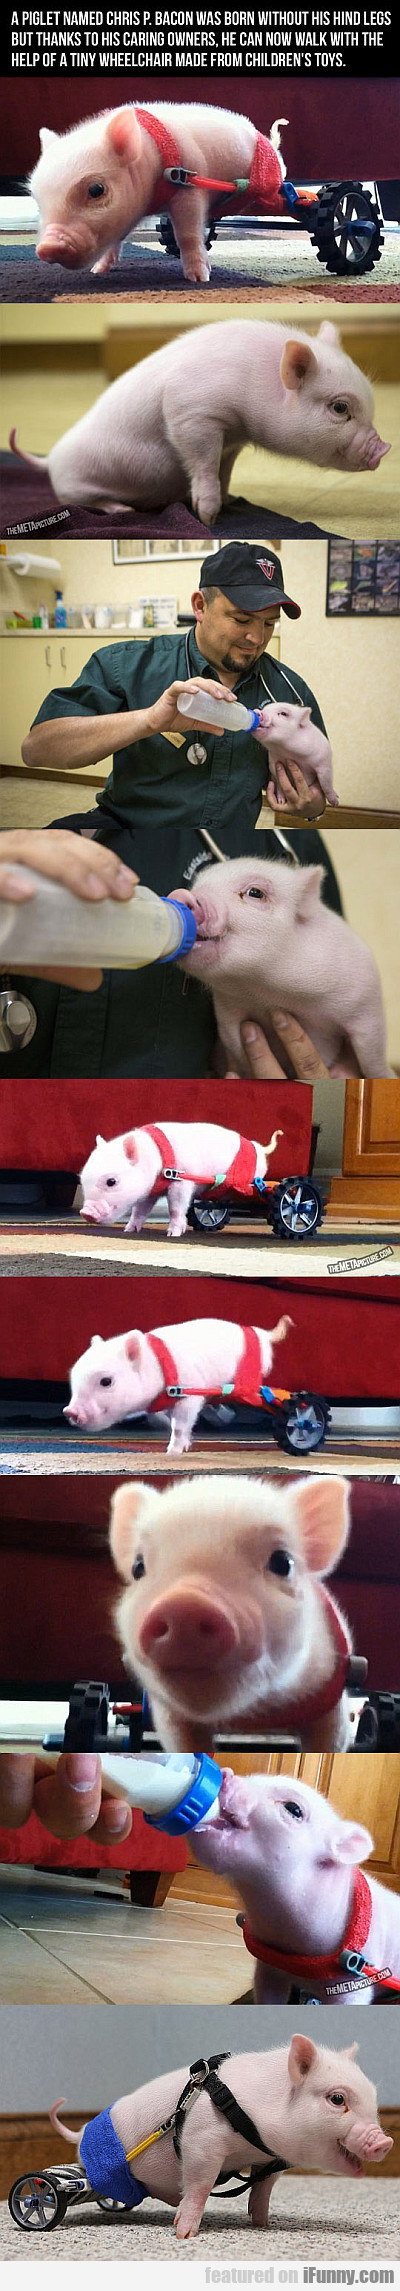 a piglet named chris p. bacon was born